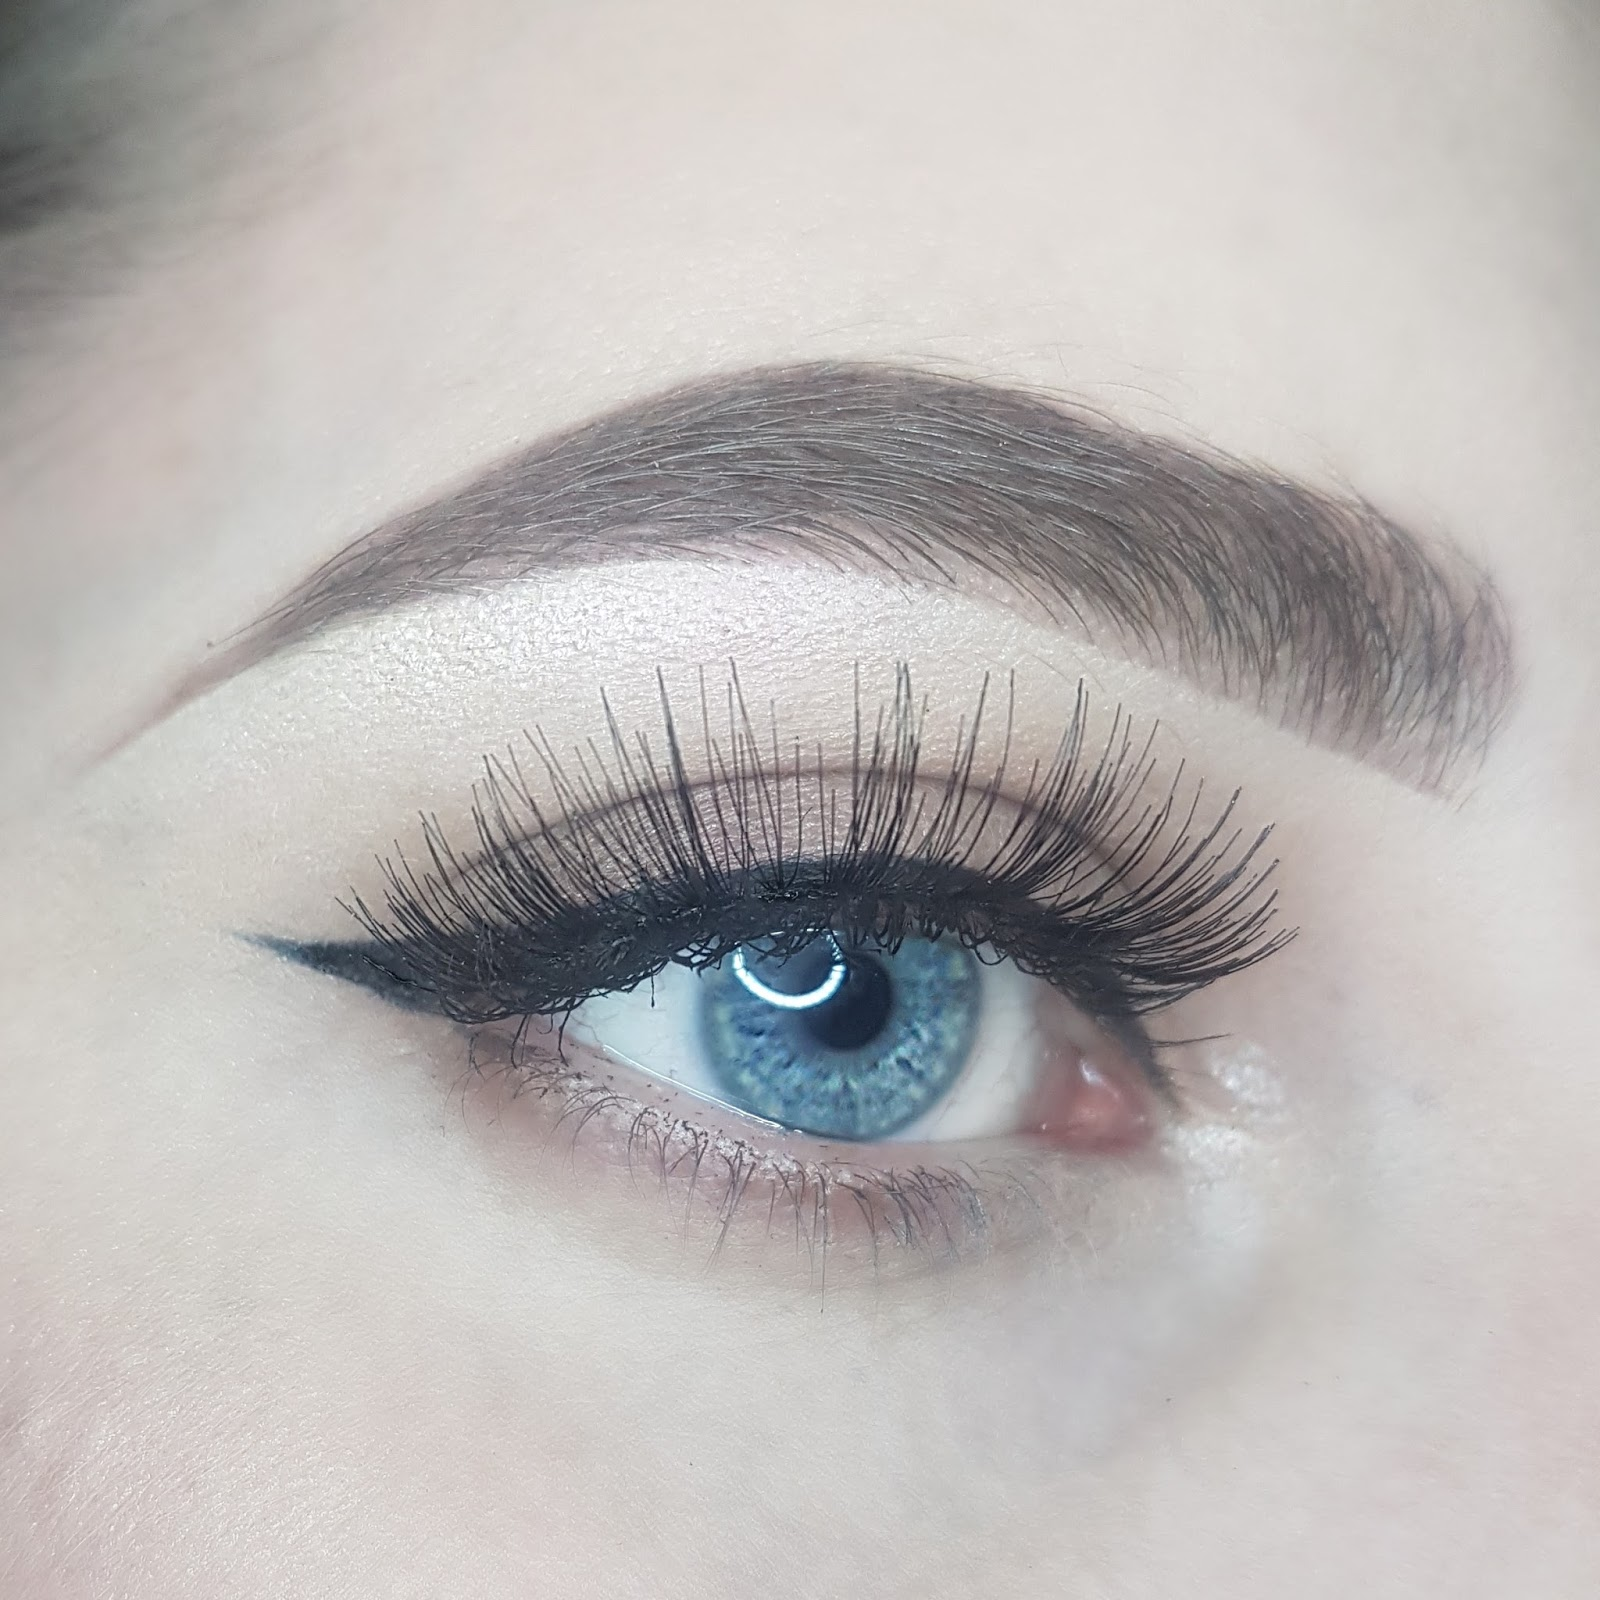 Eye Makeup Using Brow FX Products